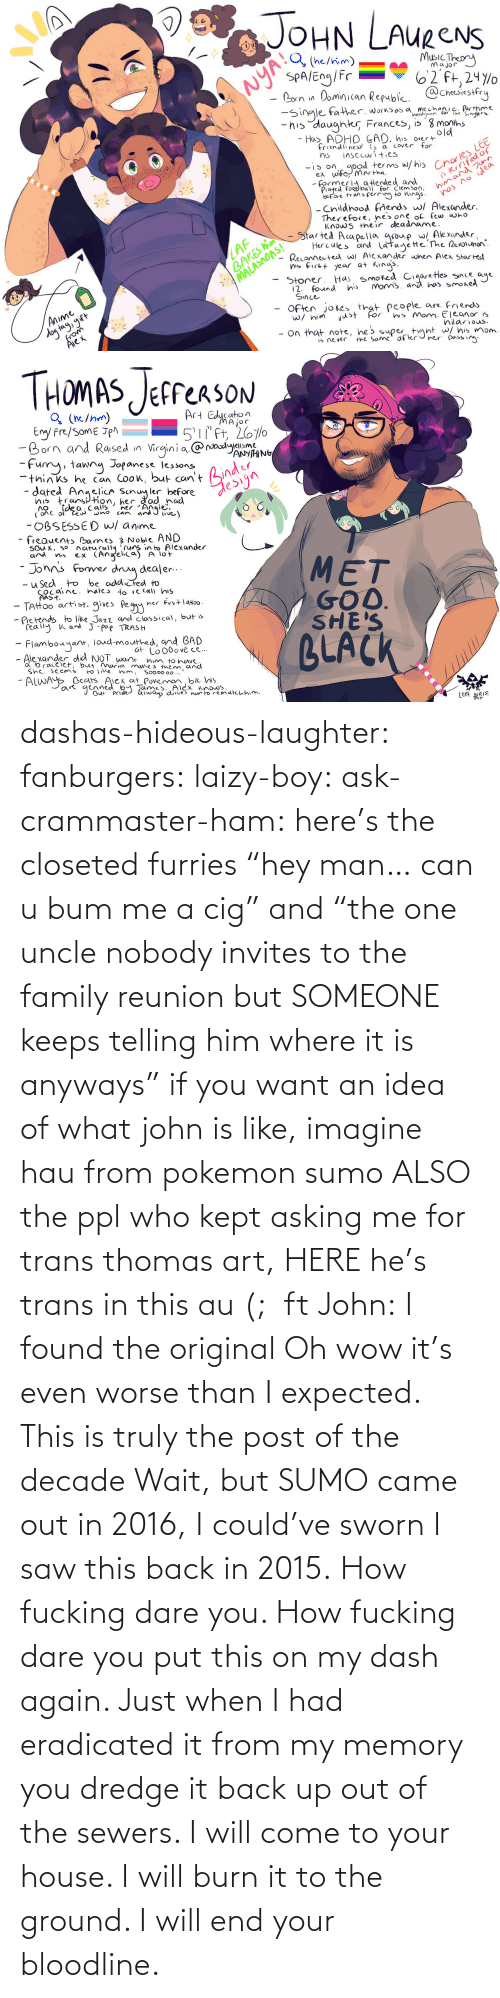 "Kept: dashas-hideous-laughter:  fanburgers:   laizy-boy:   ask-crammaster-ham:   here's the closeted furries ""hey man… can u bum me a cig"" and ""the one uncle nobody invites to the family reunion but SOMEONE keeps telling him where it is anyways""   if you want an idea of what john is like, imagine hau from pokemon sumo ALSO the ppl who kept asking me for trans thomas art, HERE he's trans in this au (;  ft John:    I found the original     Oh wow it's even worse than I expected. This is truly the post of the decade    Wait, but SUMO came out in 2016, I could've sworn I saw this back in 2015.    How fucking dare you. How fucking dare you put this on my dash again. Just when I had eradicated it from my memory you dredge it back up out of the sewers. I will come to your house. I will burn it to the ground. I will end your bloodline."